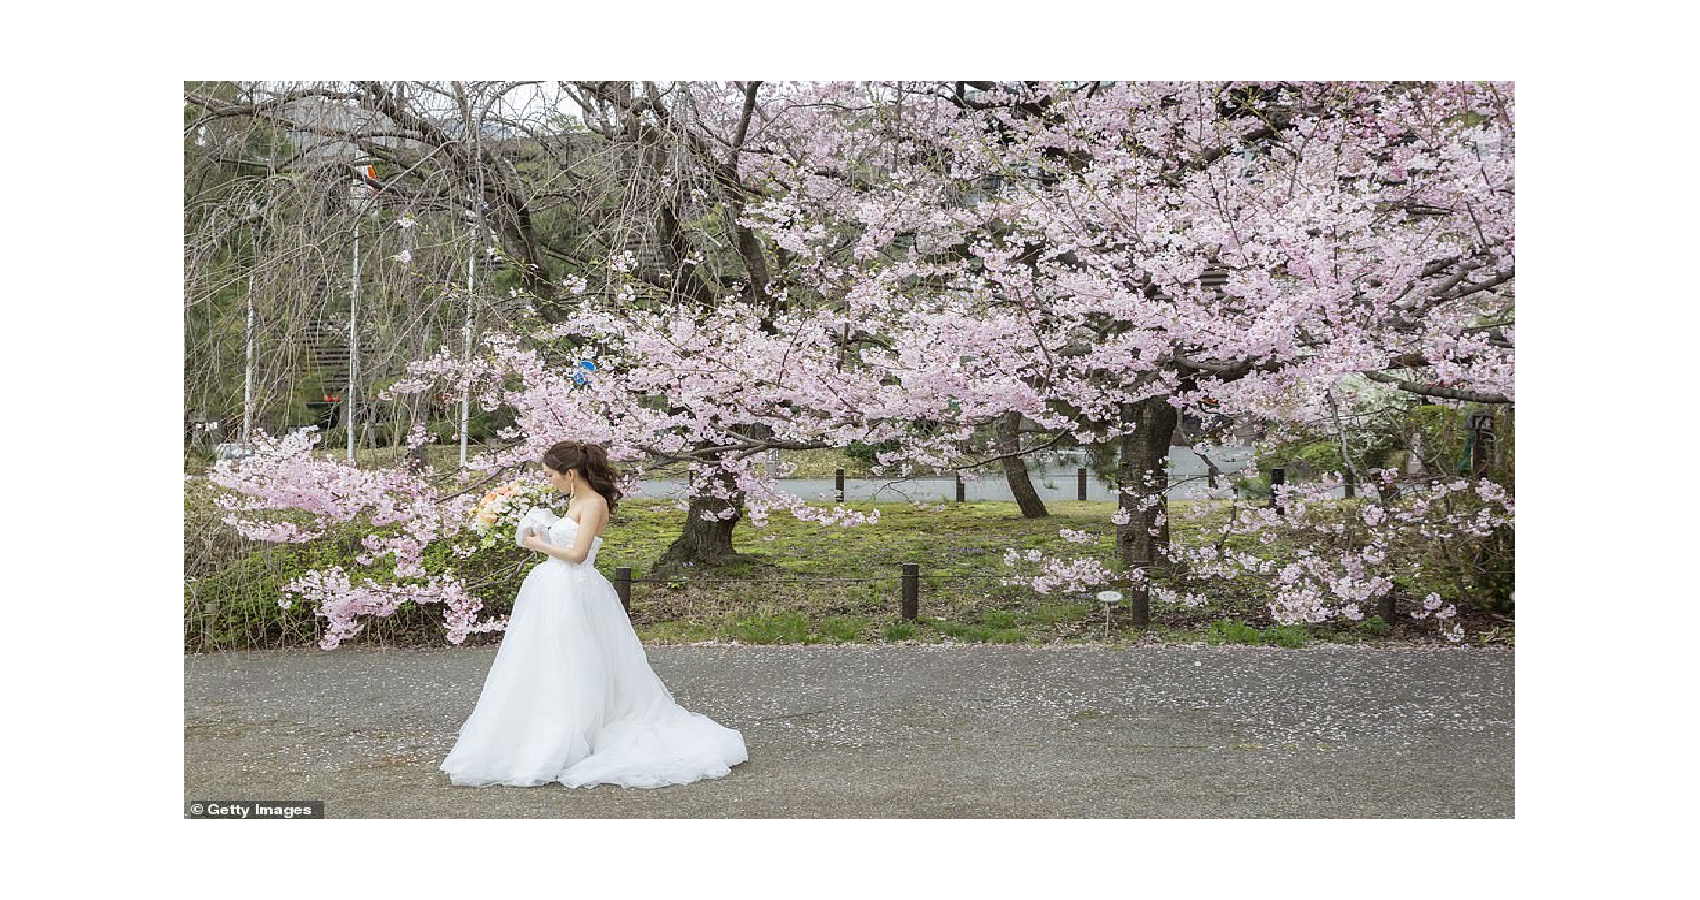 Japan's Famous Cherry Blossom Blooms Earlier Than Any Year Since First Records Began In 812 AD